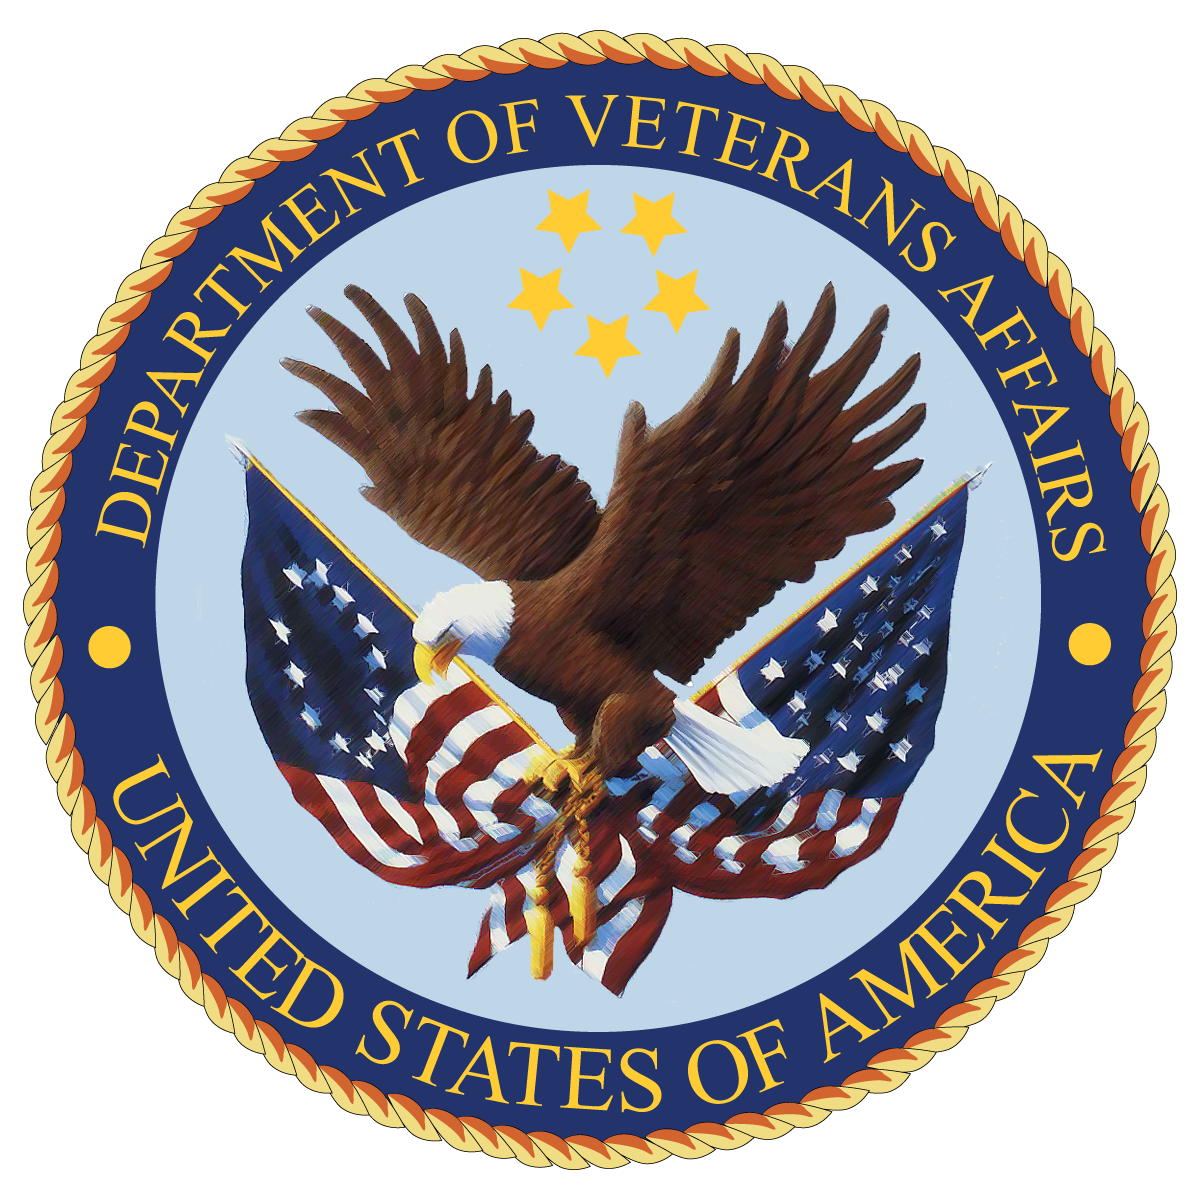 38 CFR 1.9 Description, use, and display of VA seal and flag